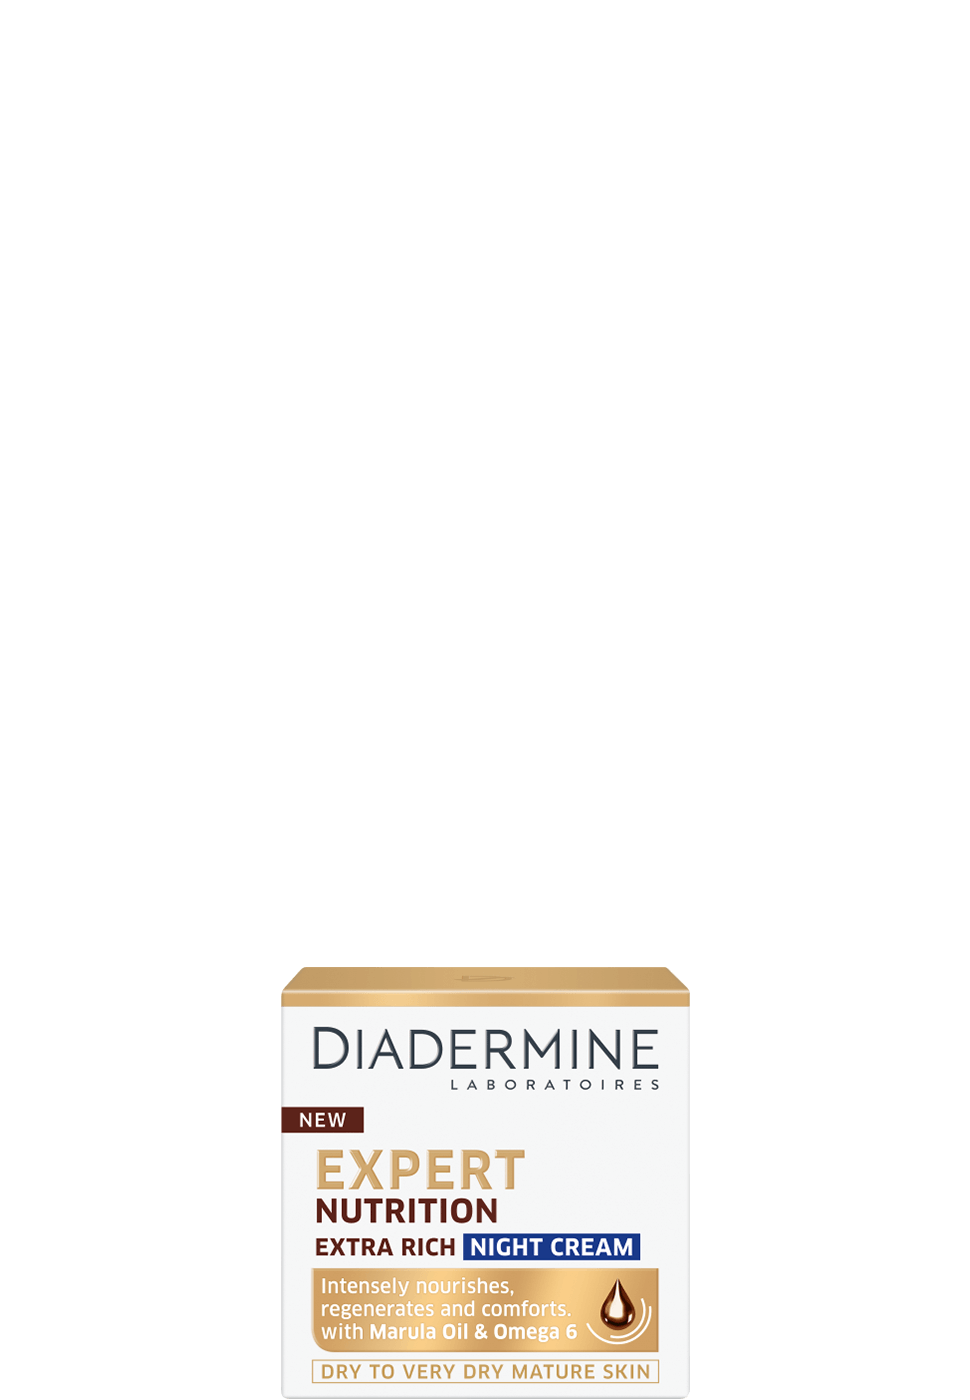 diadermine_com_expert_nutrition_extra_rich_night_cream_970x1400